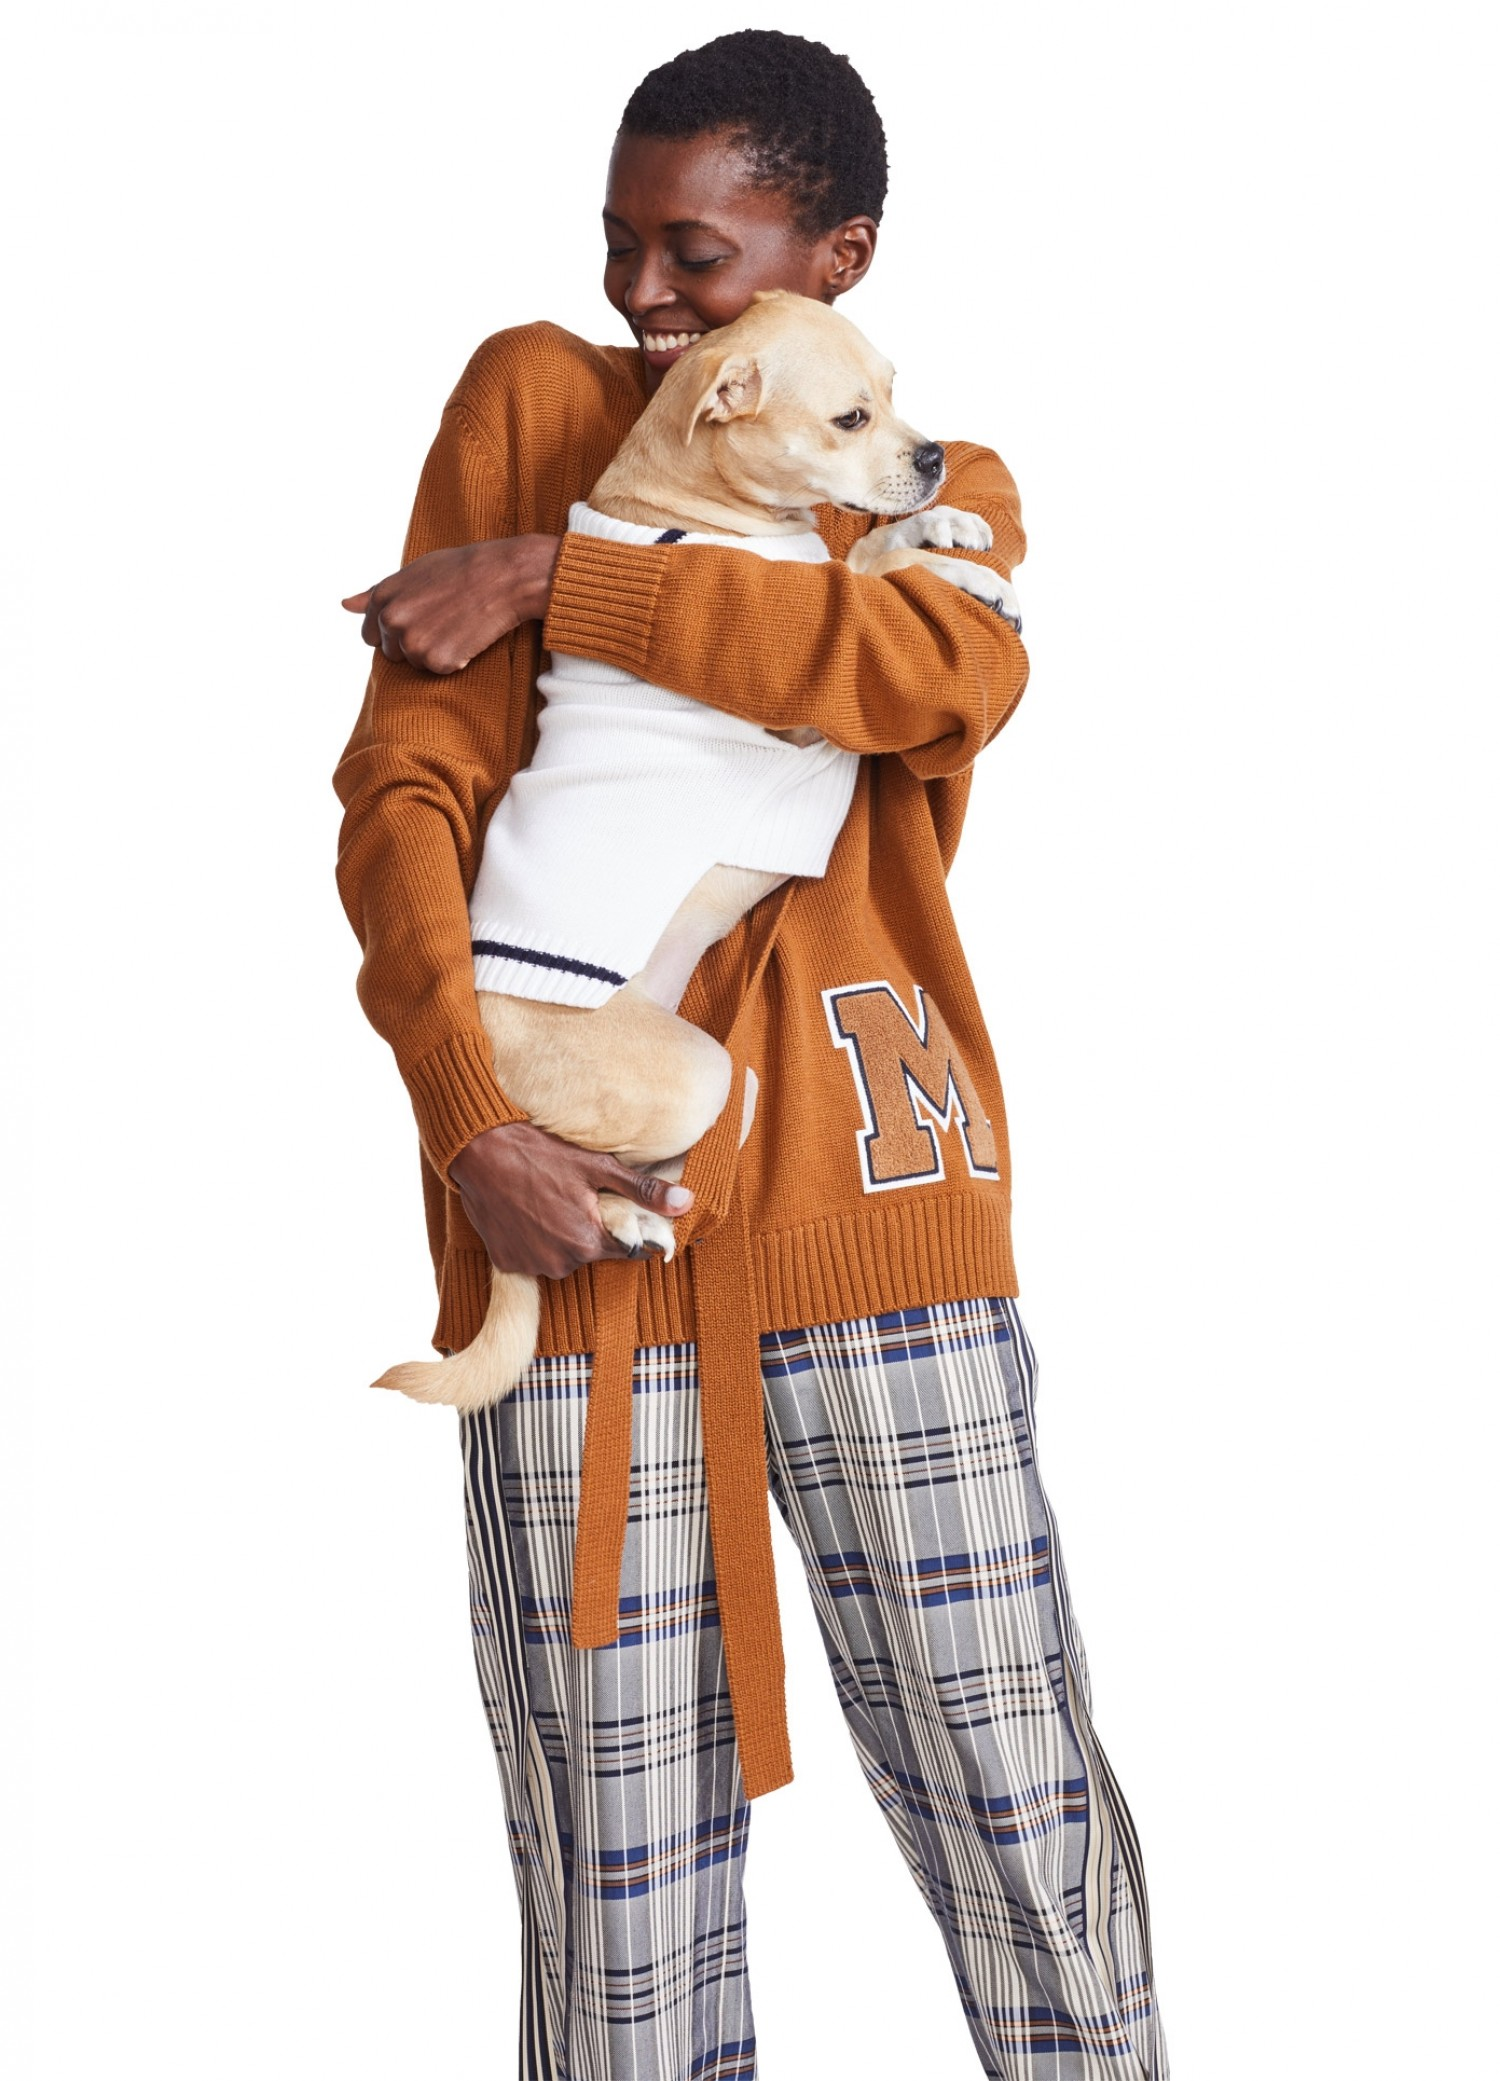 MONSE Dog Sailor Sweater on Puppy with Model